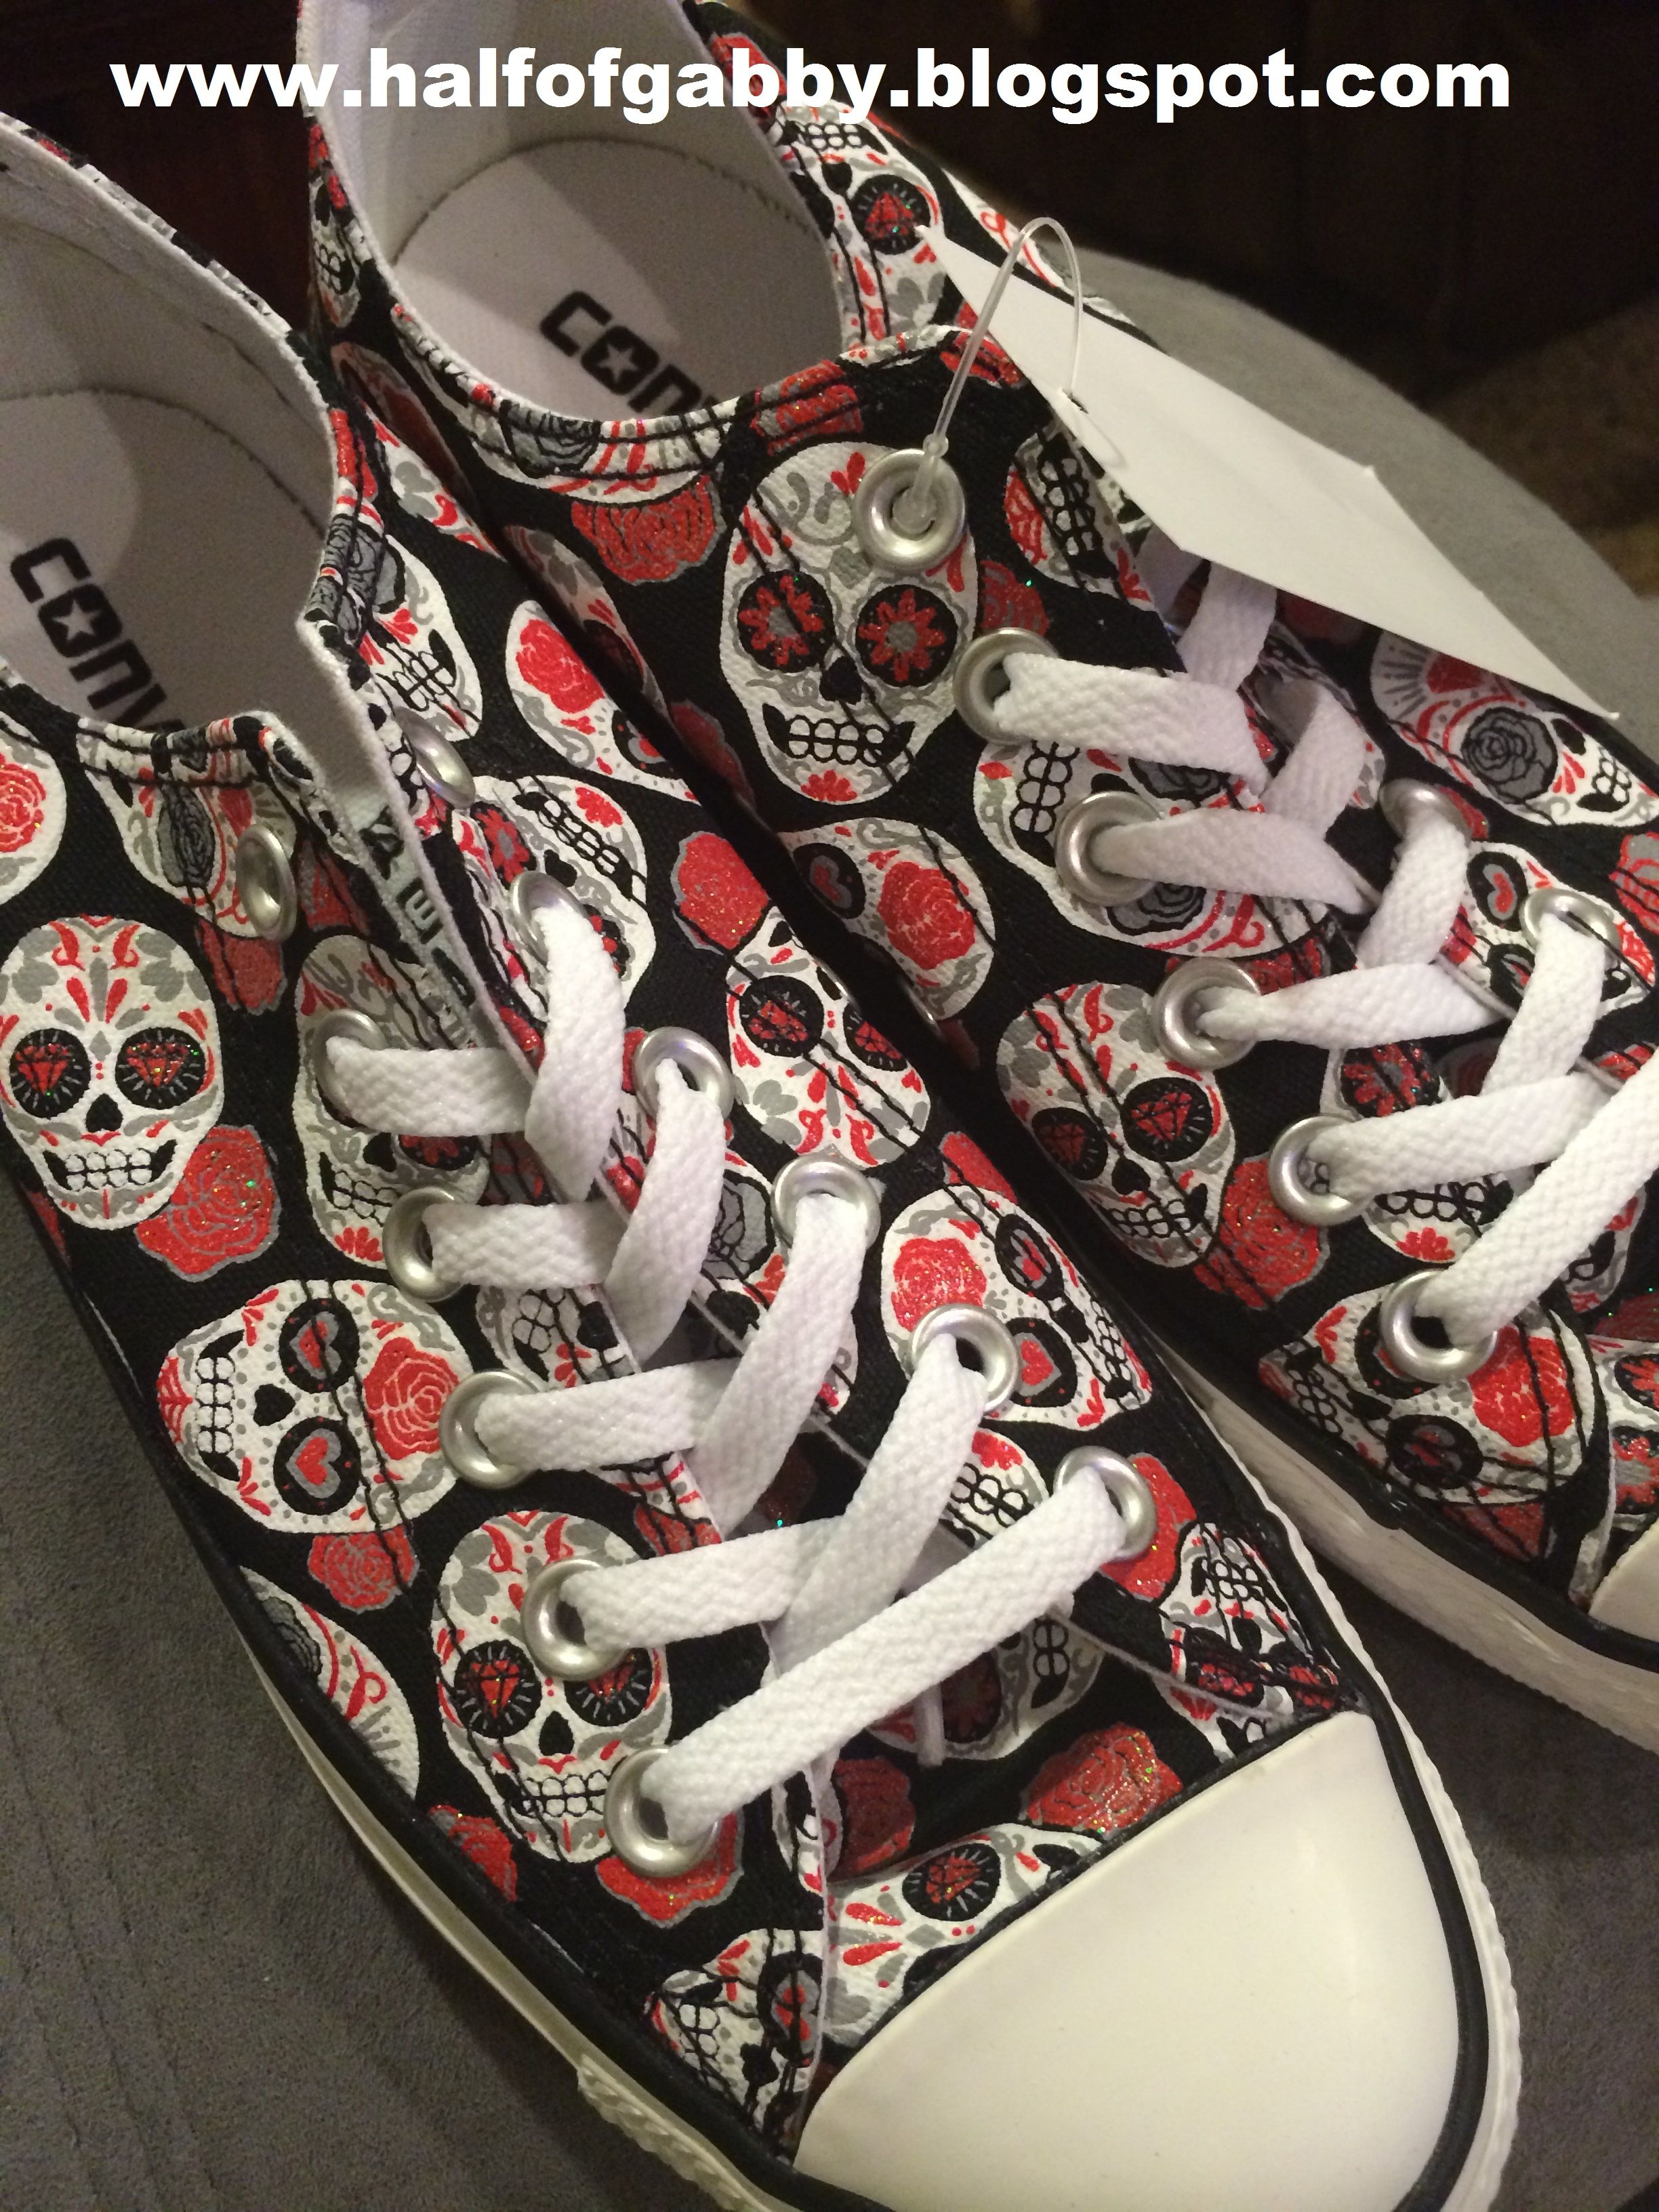 bd8629ea2c4e07 SKULL CHUCKS! My hubs got me these for my b-day! HELL YES! Half of Gabby on  Facebook.